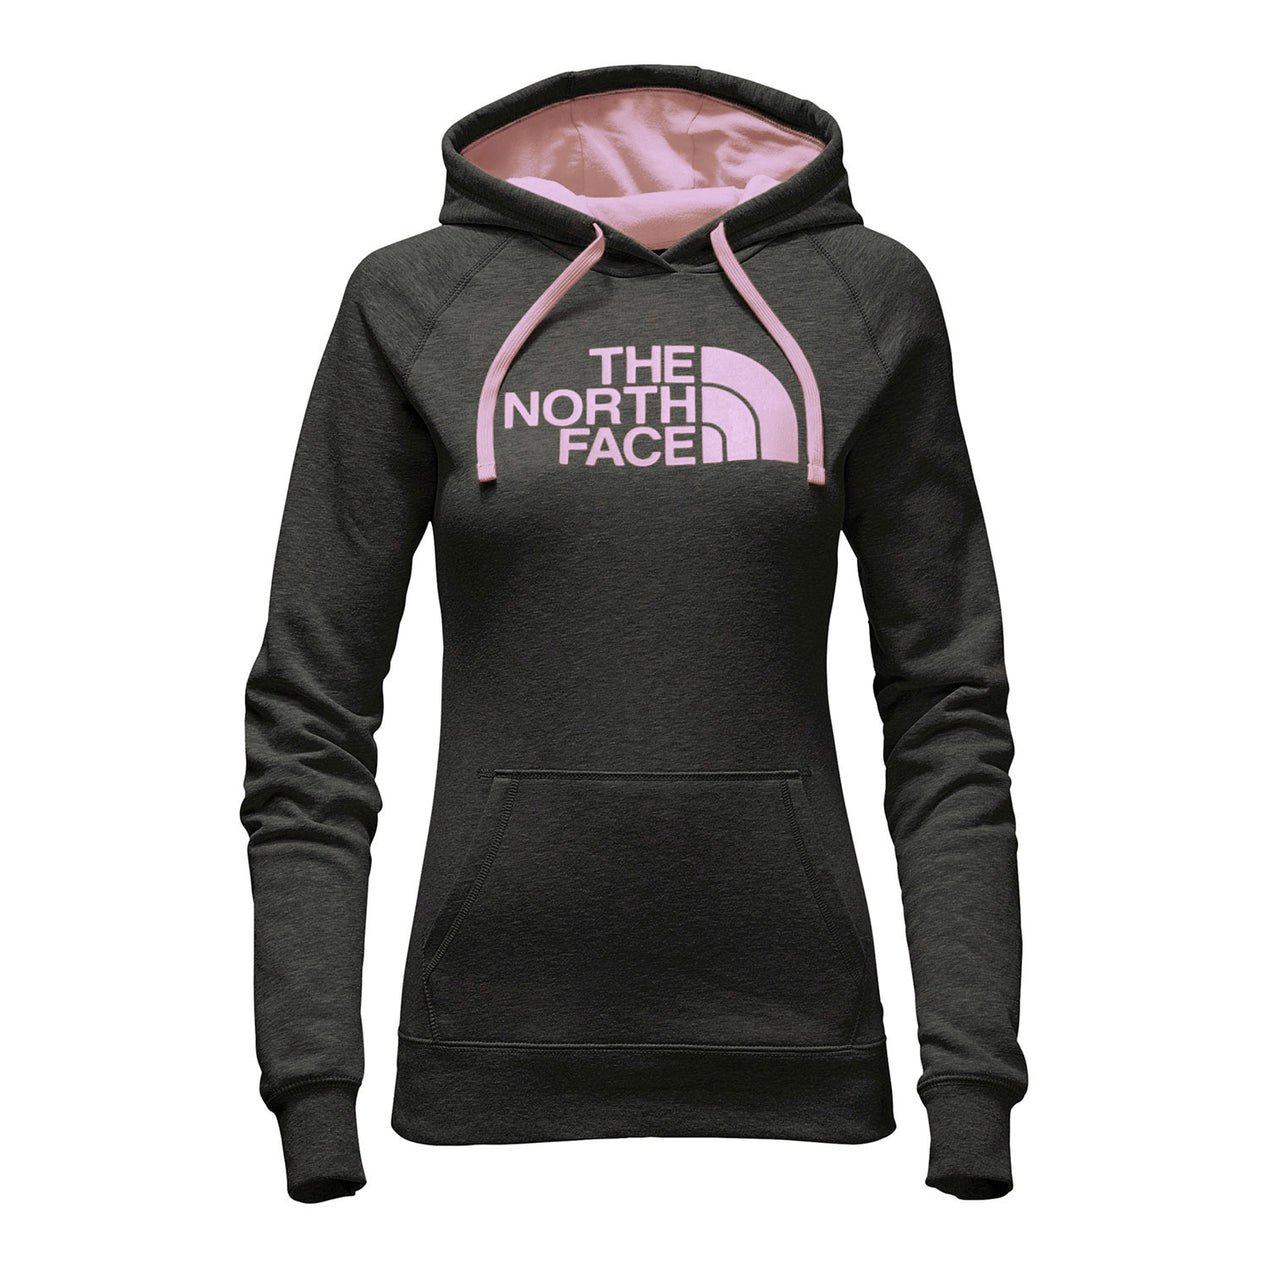 f1dfe966d6f288 The North Face Women s Half Dome Hoodie